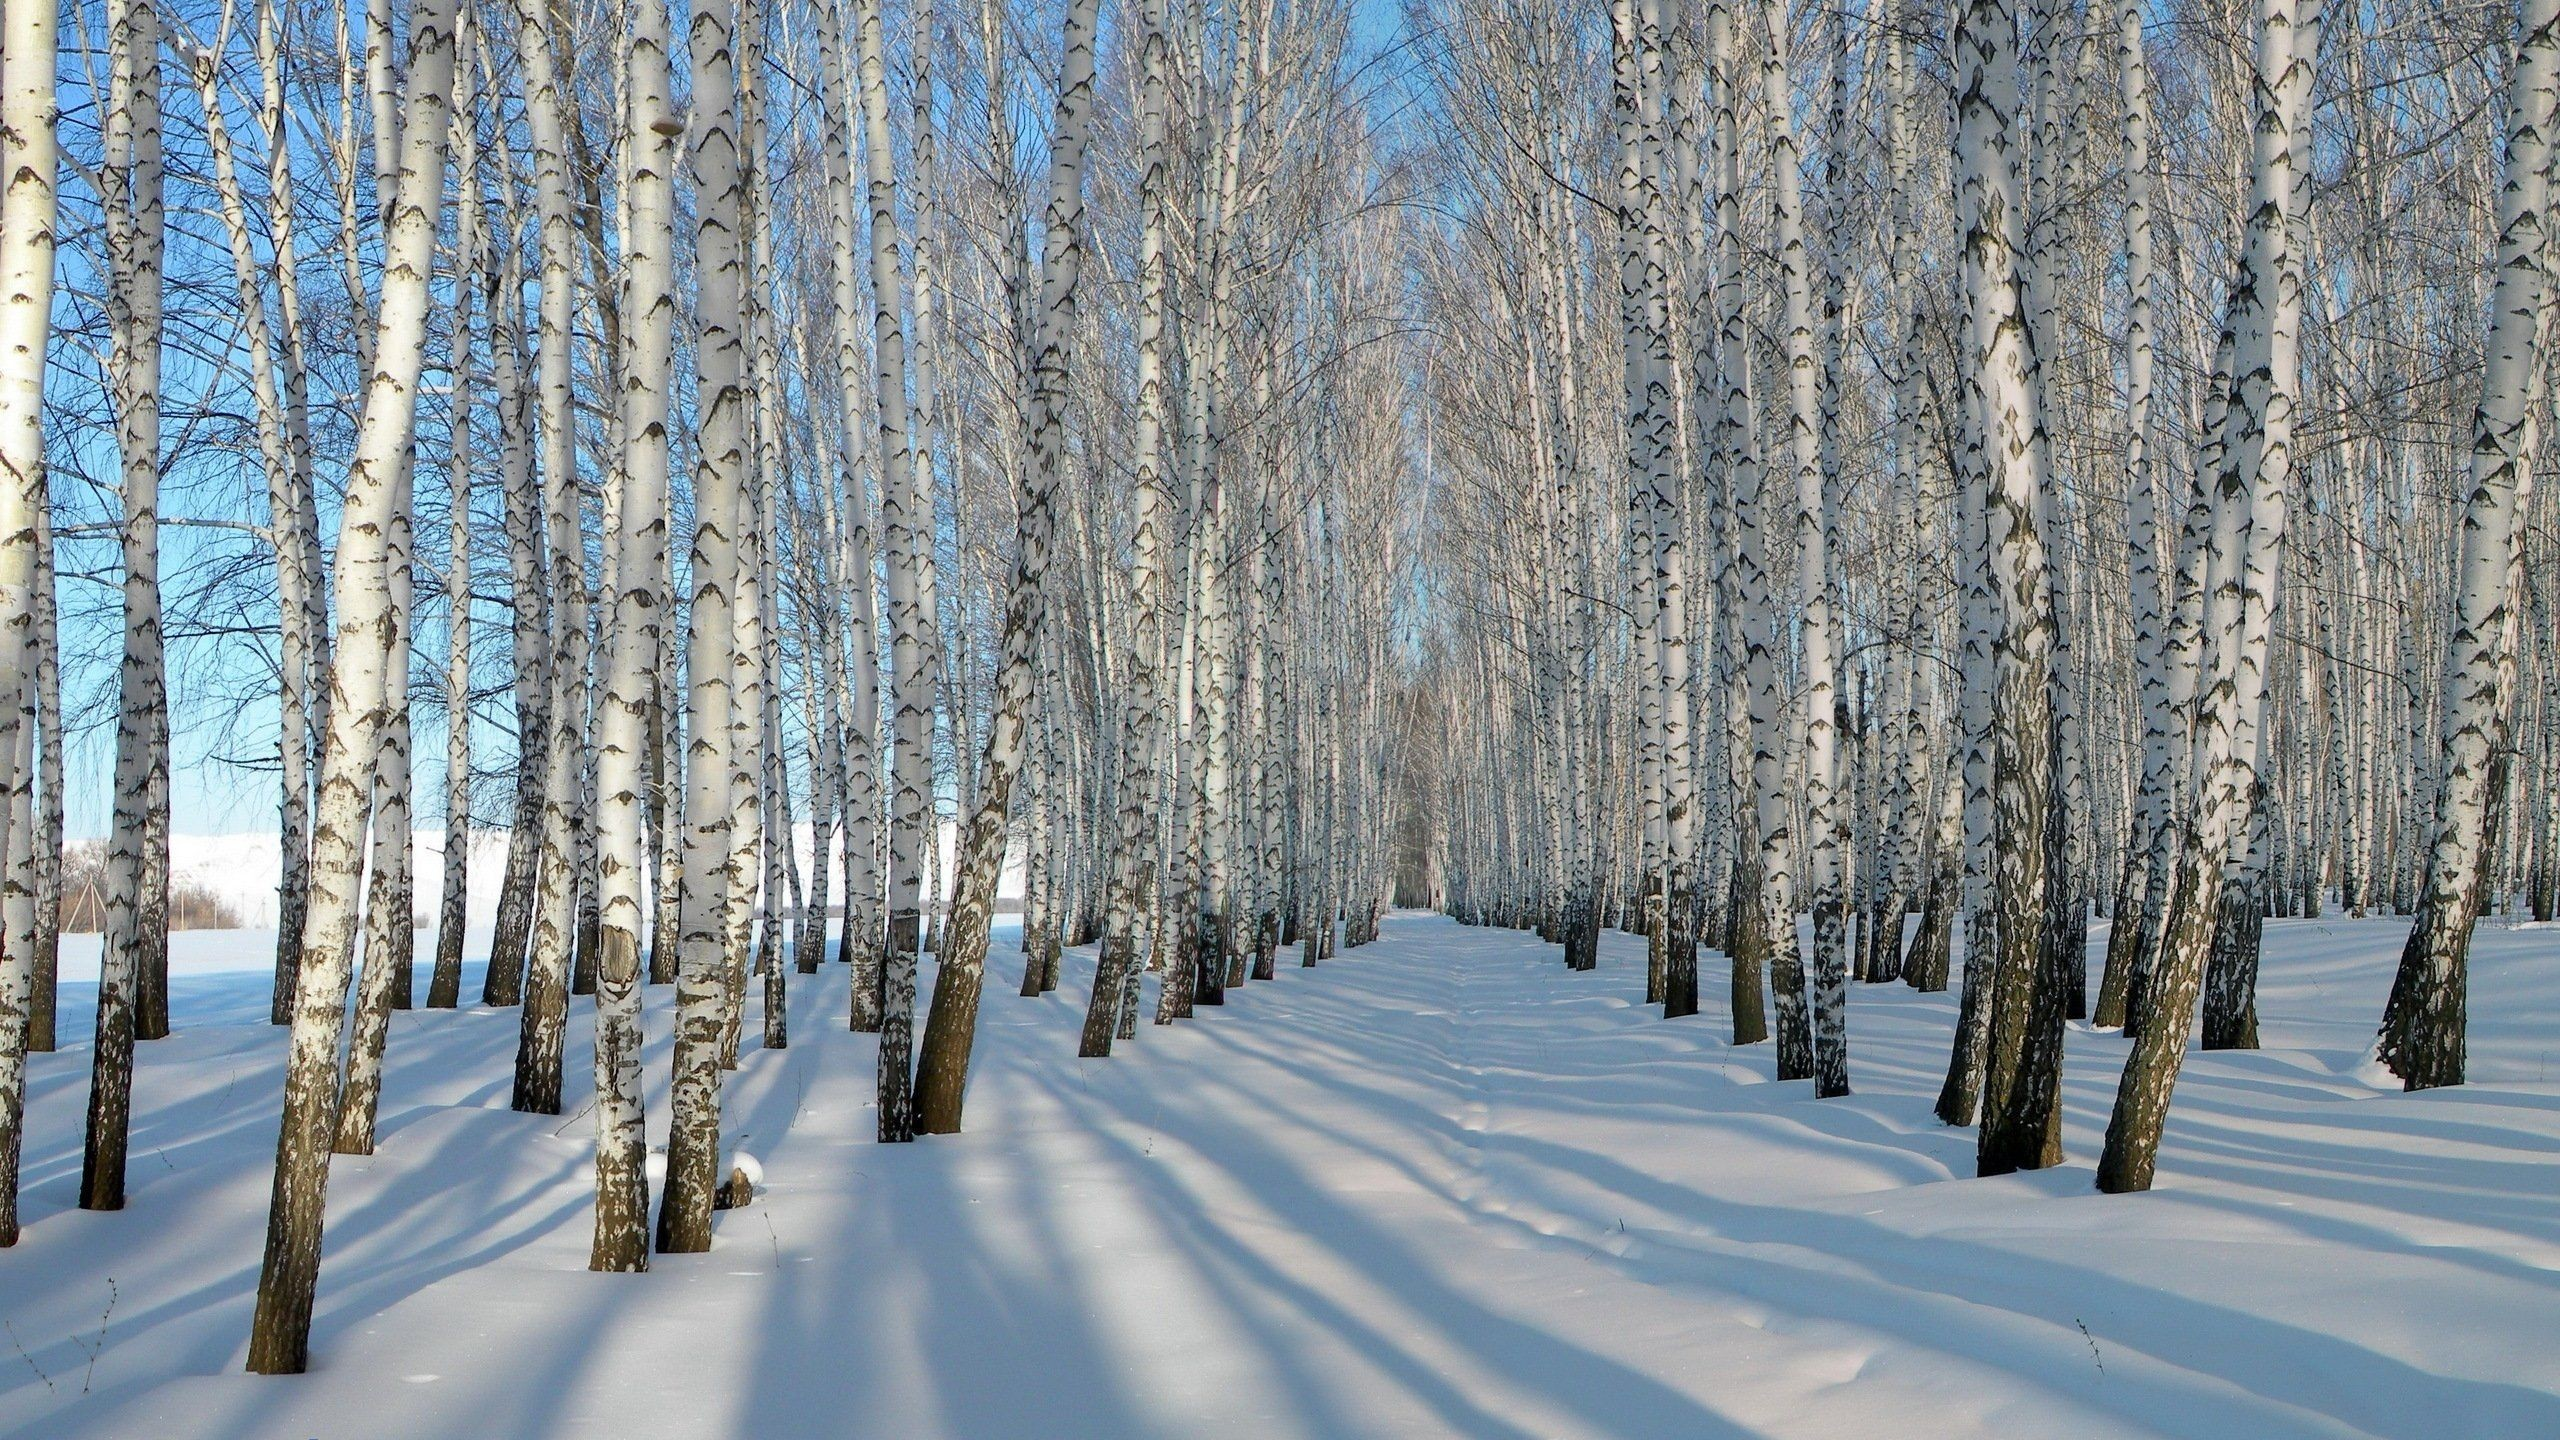 Res: 2560x1440, Image result for birch trees in winter wallpaper